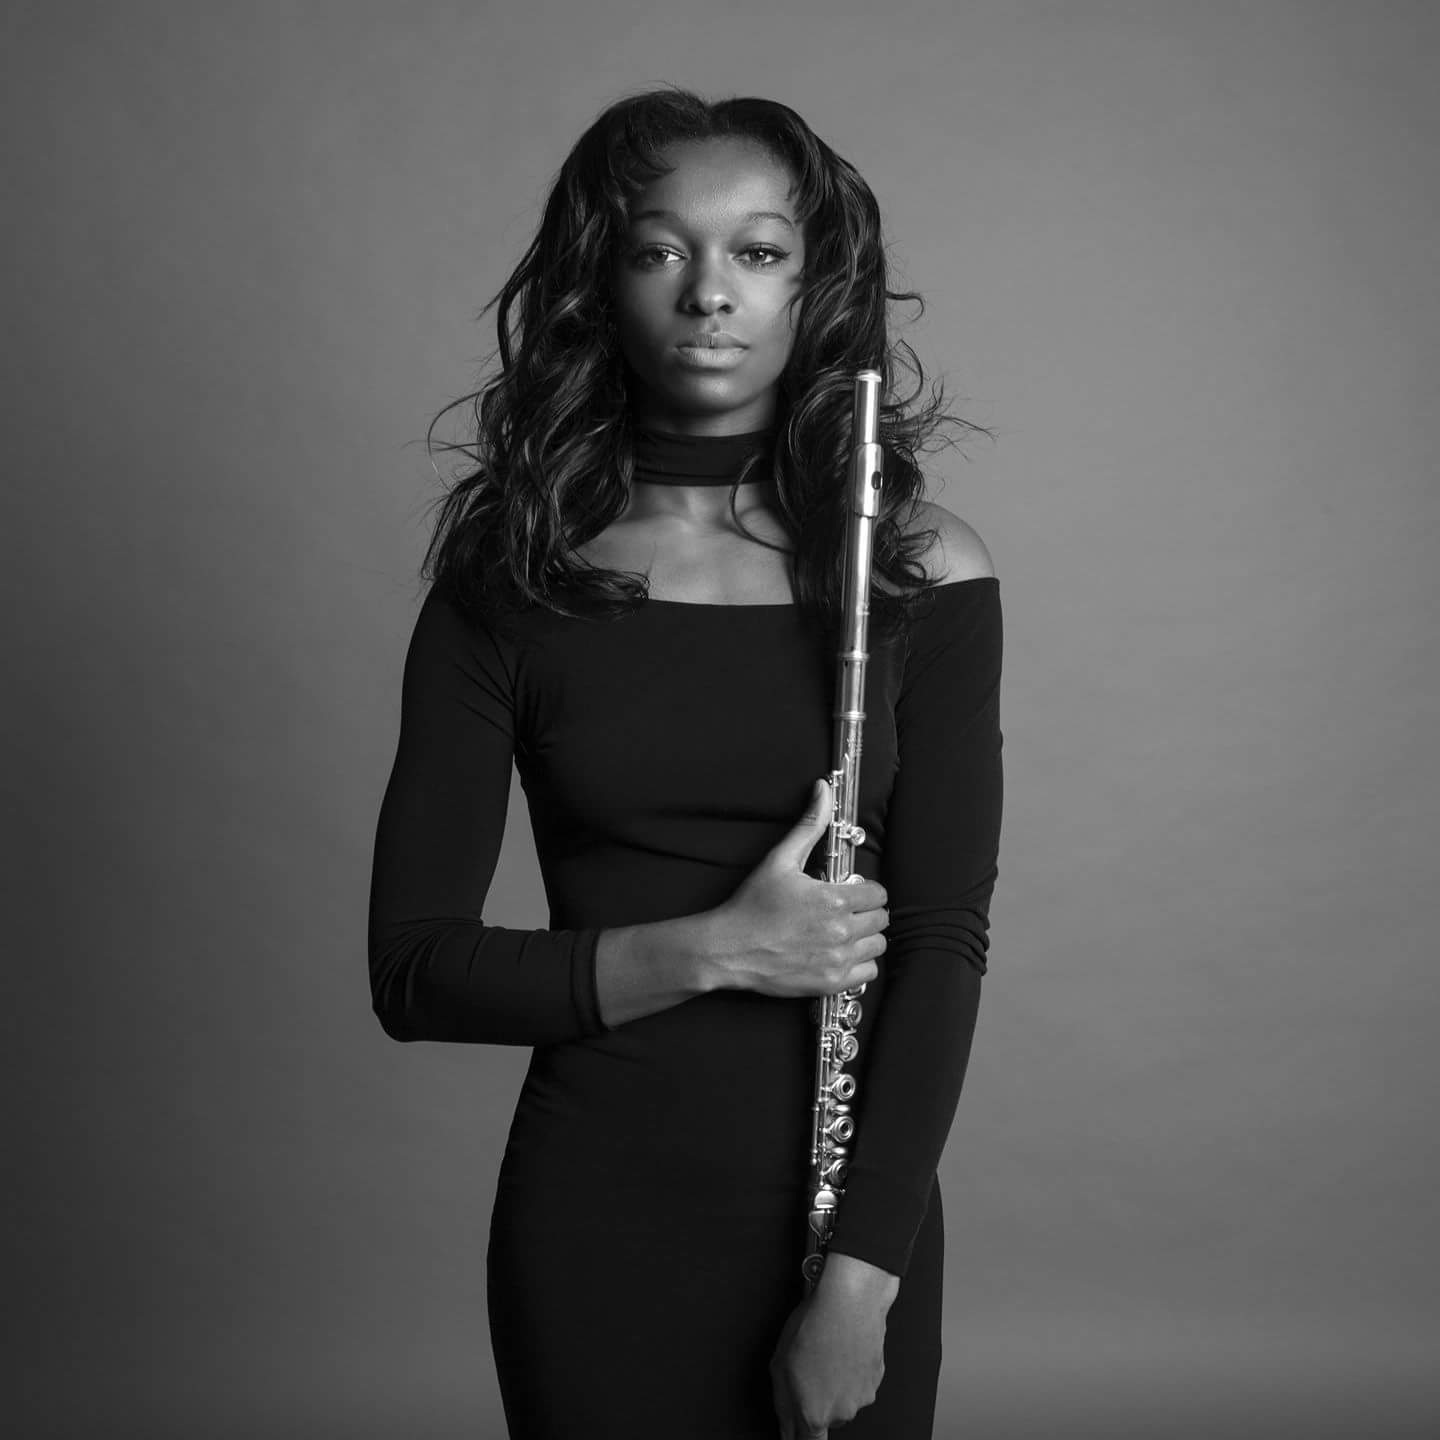 Coreisa Janelle Lee , born in Birmingham, Alabama, started playing the flute at age eight. Contributing to her success, she has had the pleasure of working with highly trained musicians such as: Ian Clarke, Greg Patillo, Raffaele Trevisani, Lorna McGhee, and more. Her past teachers include: Kim Scott, Dr. Frank Adams, Aaron Evens and Ann Edwards. Coreisa is a graduate of the Alabama School of Fine Arts(ASFA) where she held the spot of principal flutist of the ASFA Orchestra and the Alabama Symphony Youth Orchestra. In 2011 and 2012, Ms.Lee won first place in the woodwind division at the Alabama Federation of Music Clubs Competition. In 2012, she also won the Concerto Competition at Rocky Ridge Music Center in Colorado, and had the privilege to solo with a live string orchestra. In 2013, Ms.Lee won 1st place in the Lois Pickard Concerto Competition and also attended the Music Teachers National Association competition in Anaheim, California and was named a finalist after winning the State level in Alabama and the Southern Division level in North Carolina. Recently, Ms.Lee made an appearance on the Jimmy Kimmel show and has been a guest on the Meredith Vieira show where she was awarded a brand new professional Powell flute by Meredith Vieira herself. She also had the chance to perform for the United Nations 69th anniversary alongside the famous pianist, Lang Lang, and the famous singer, Sting. Former principal flutist in the New York Youth Symphony, Coreisa Lee has now finished her senior year as a full four year scholarship recipient in the undergraduate program at the Manhattan School of Music. She was a 4th year recipient of the William Randolph Hearst Scholarship and privately studied with Linda Chesis majoring in Classical Flute performance.